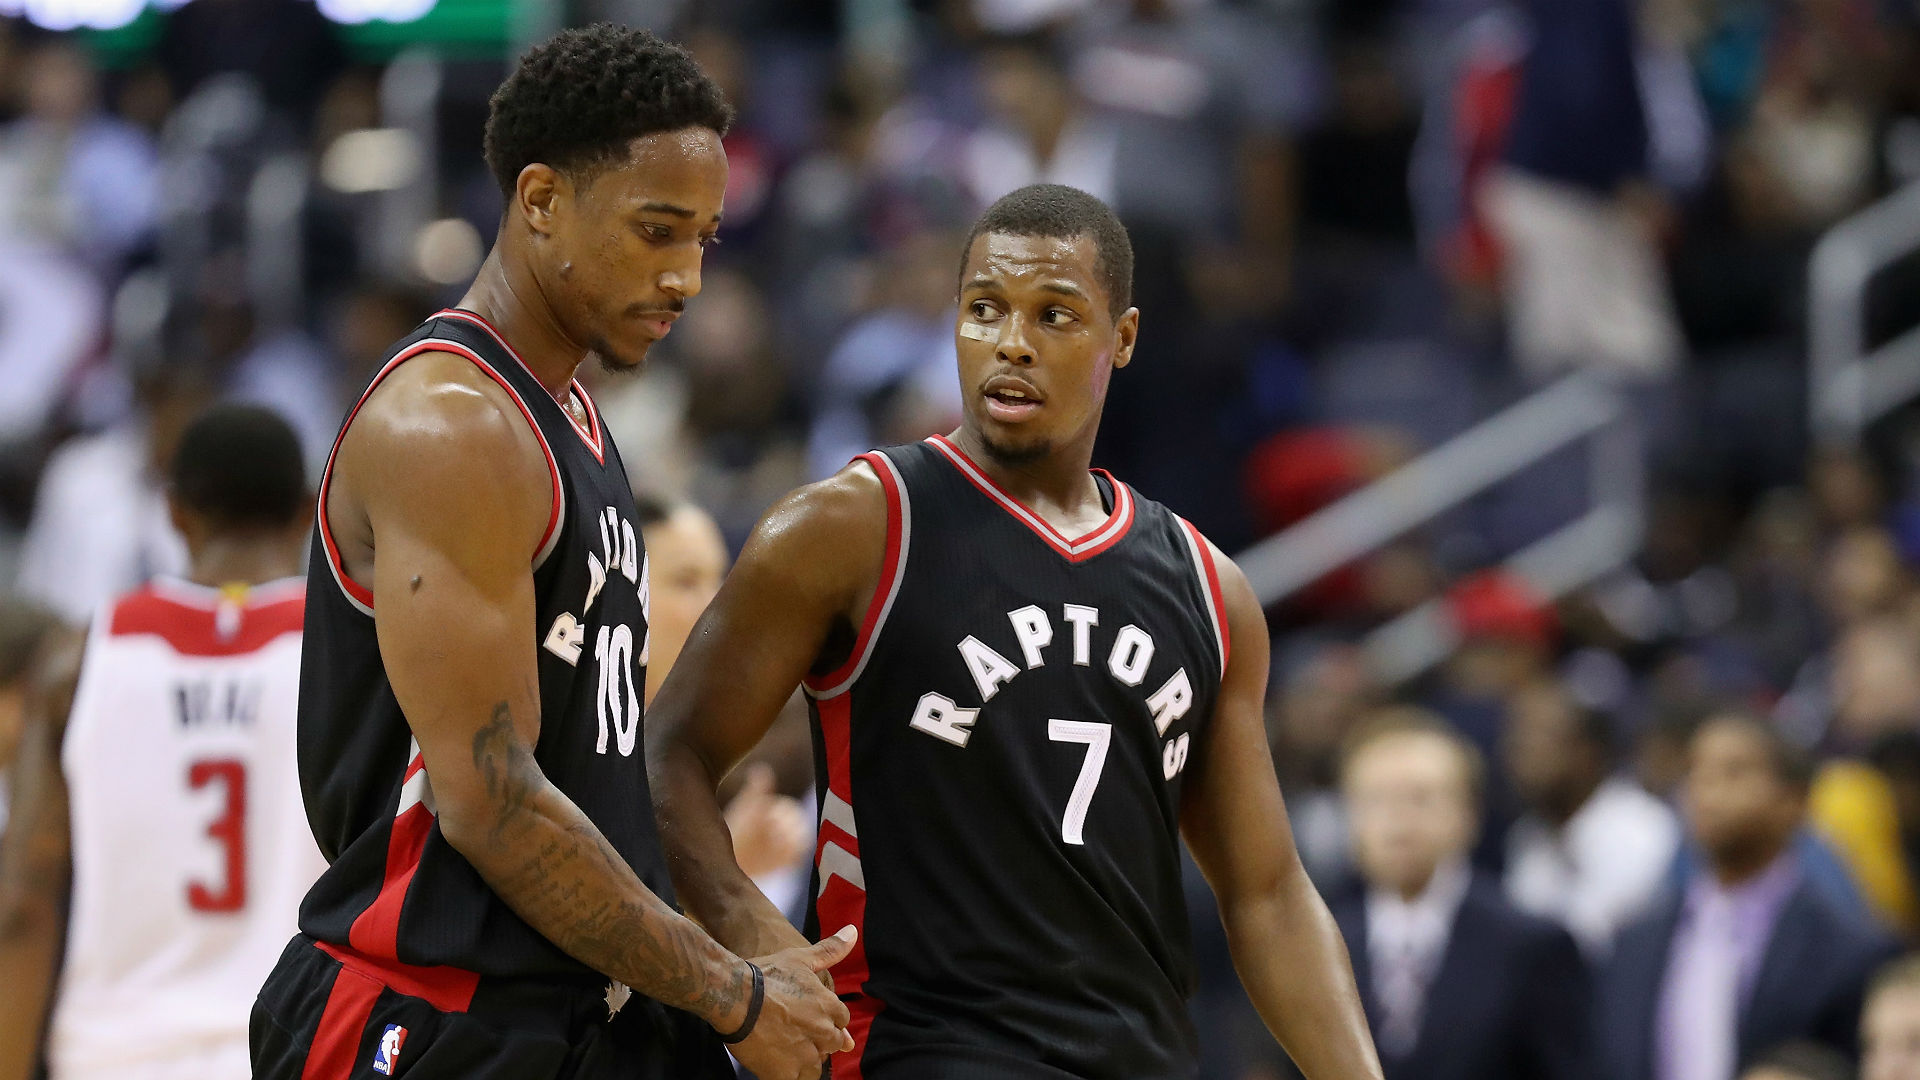 Raptors without Kyle Lowry for Tuesday's game against Heat